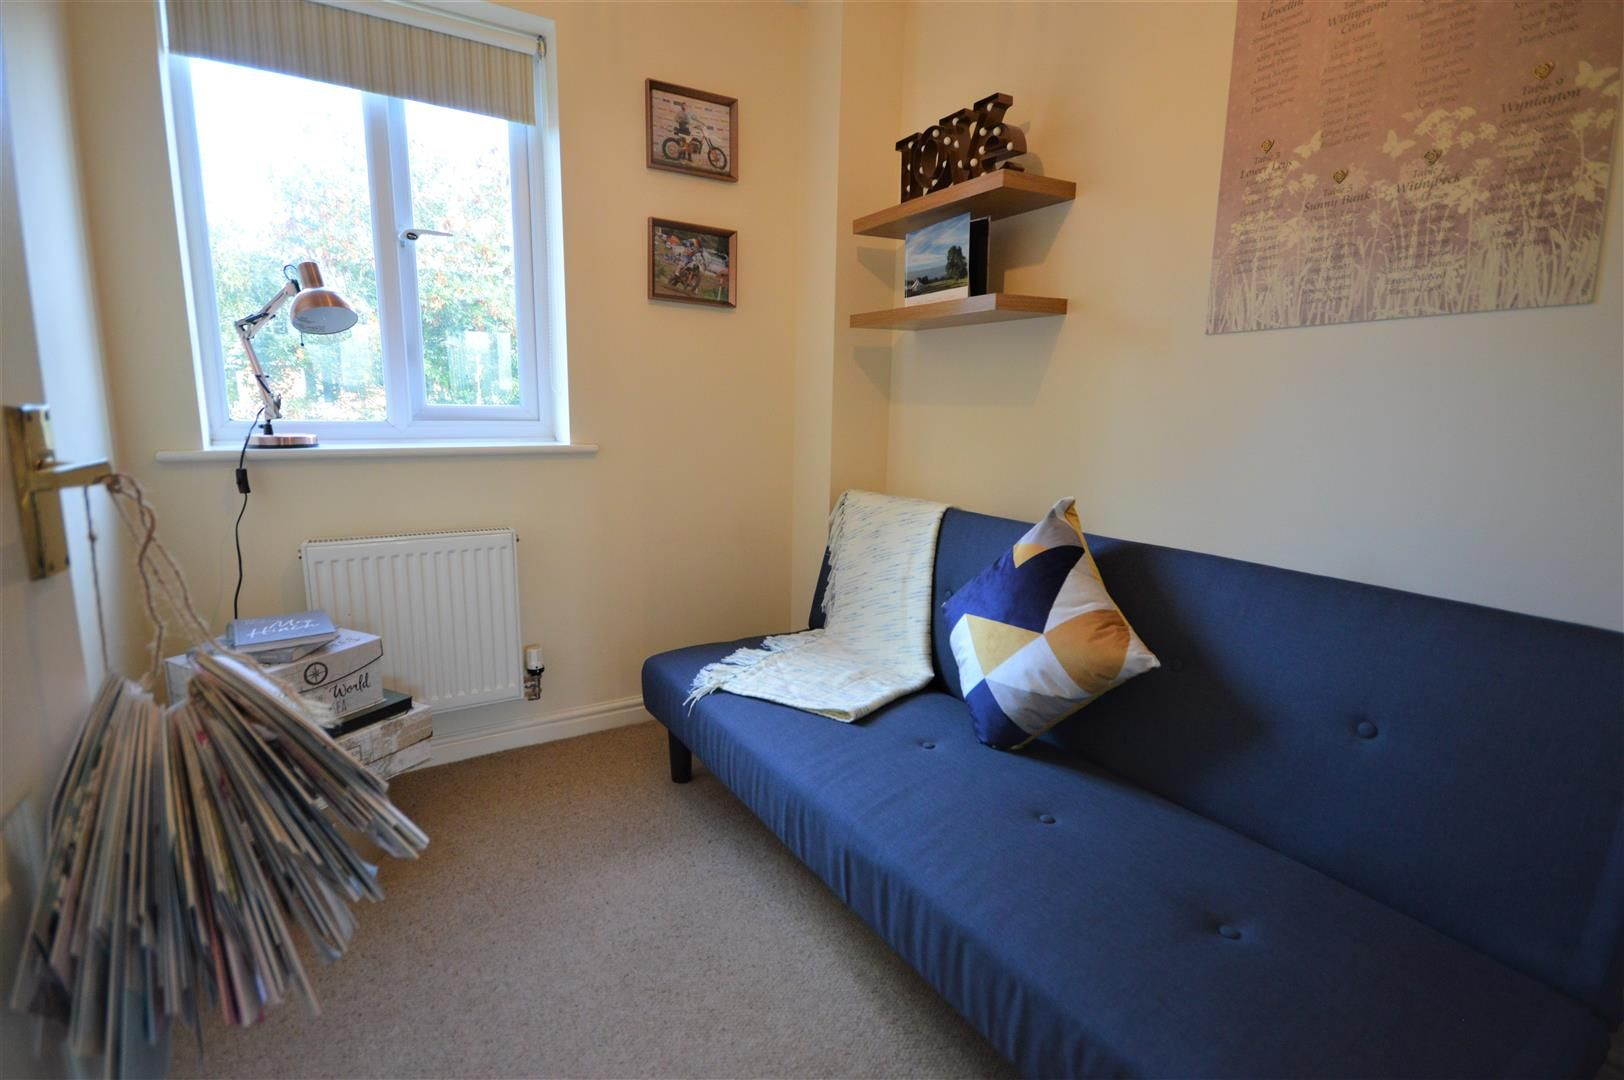 4 bed semi-detached for sale in Leominster  - Property Image 11